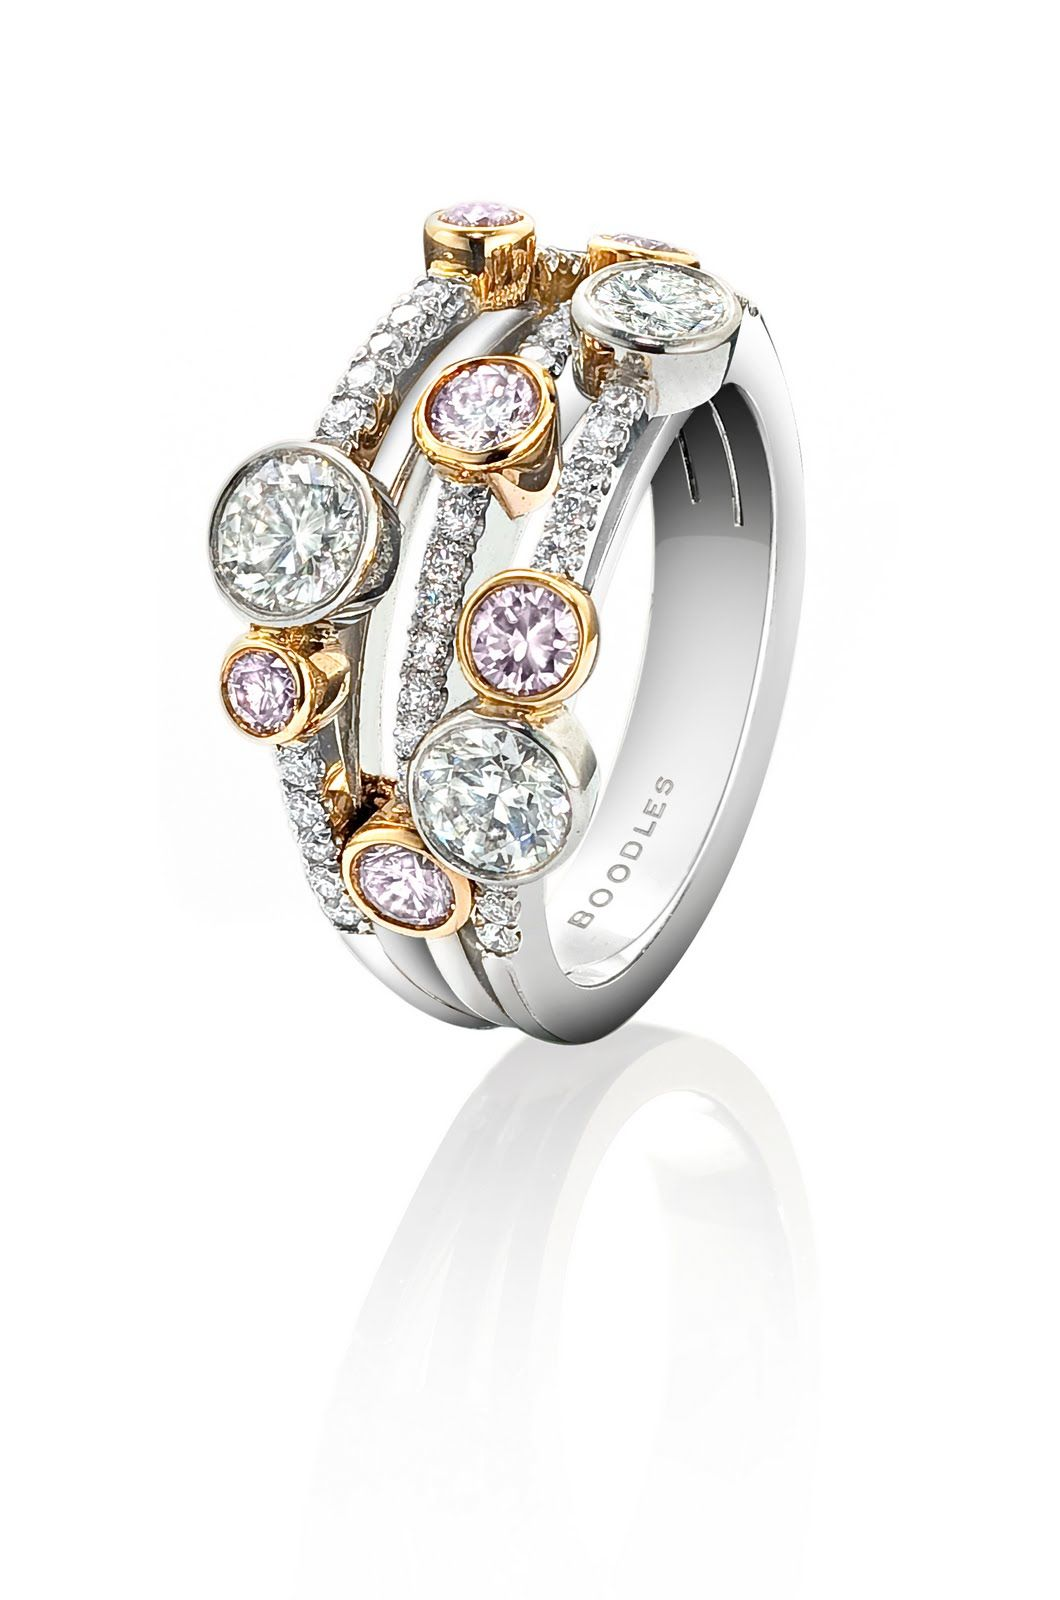 engagementringsre diamond round pink rings from mdc large jewellery for halo ring engagement cfm diamonds nyc